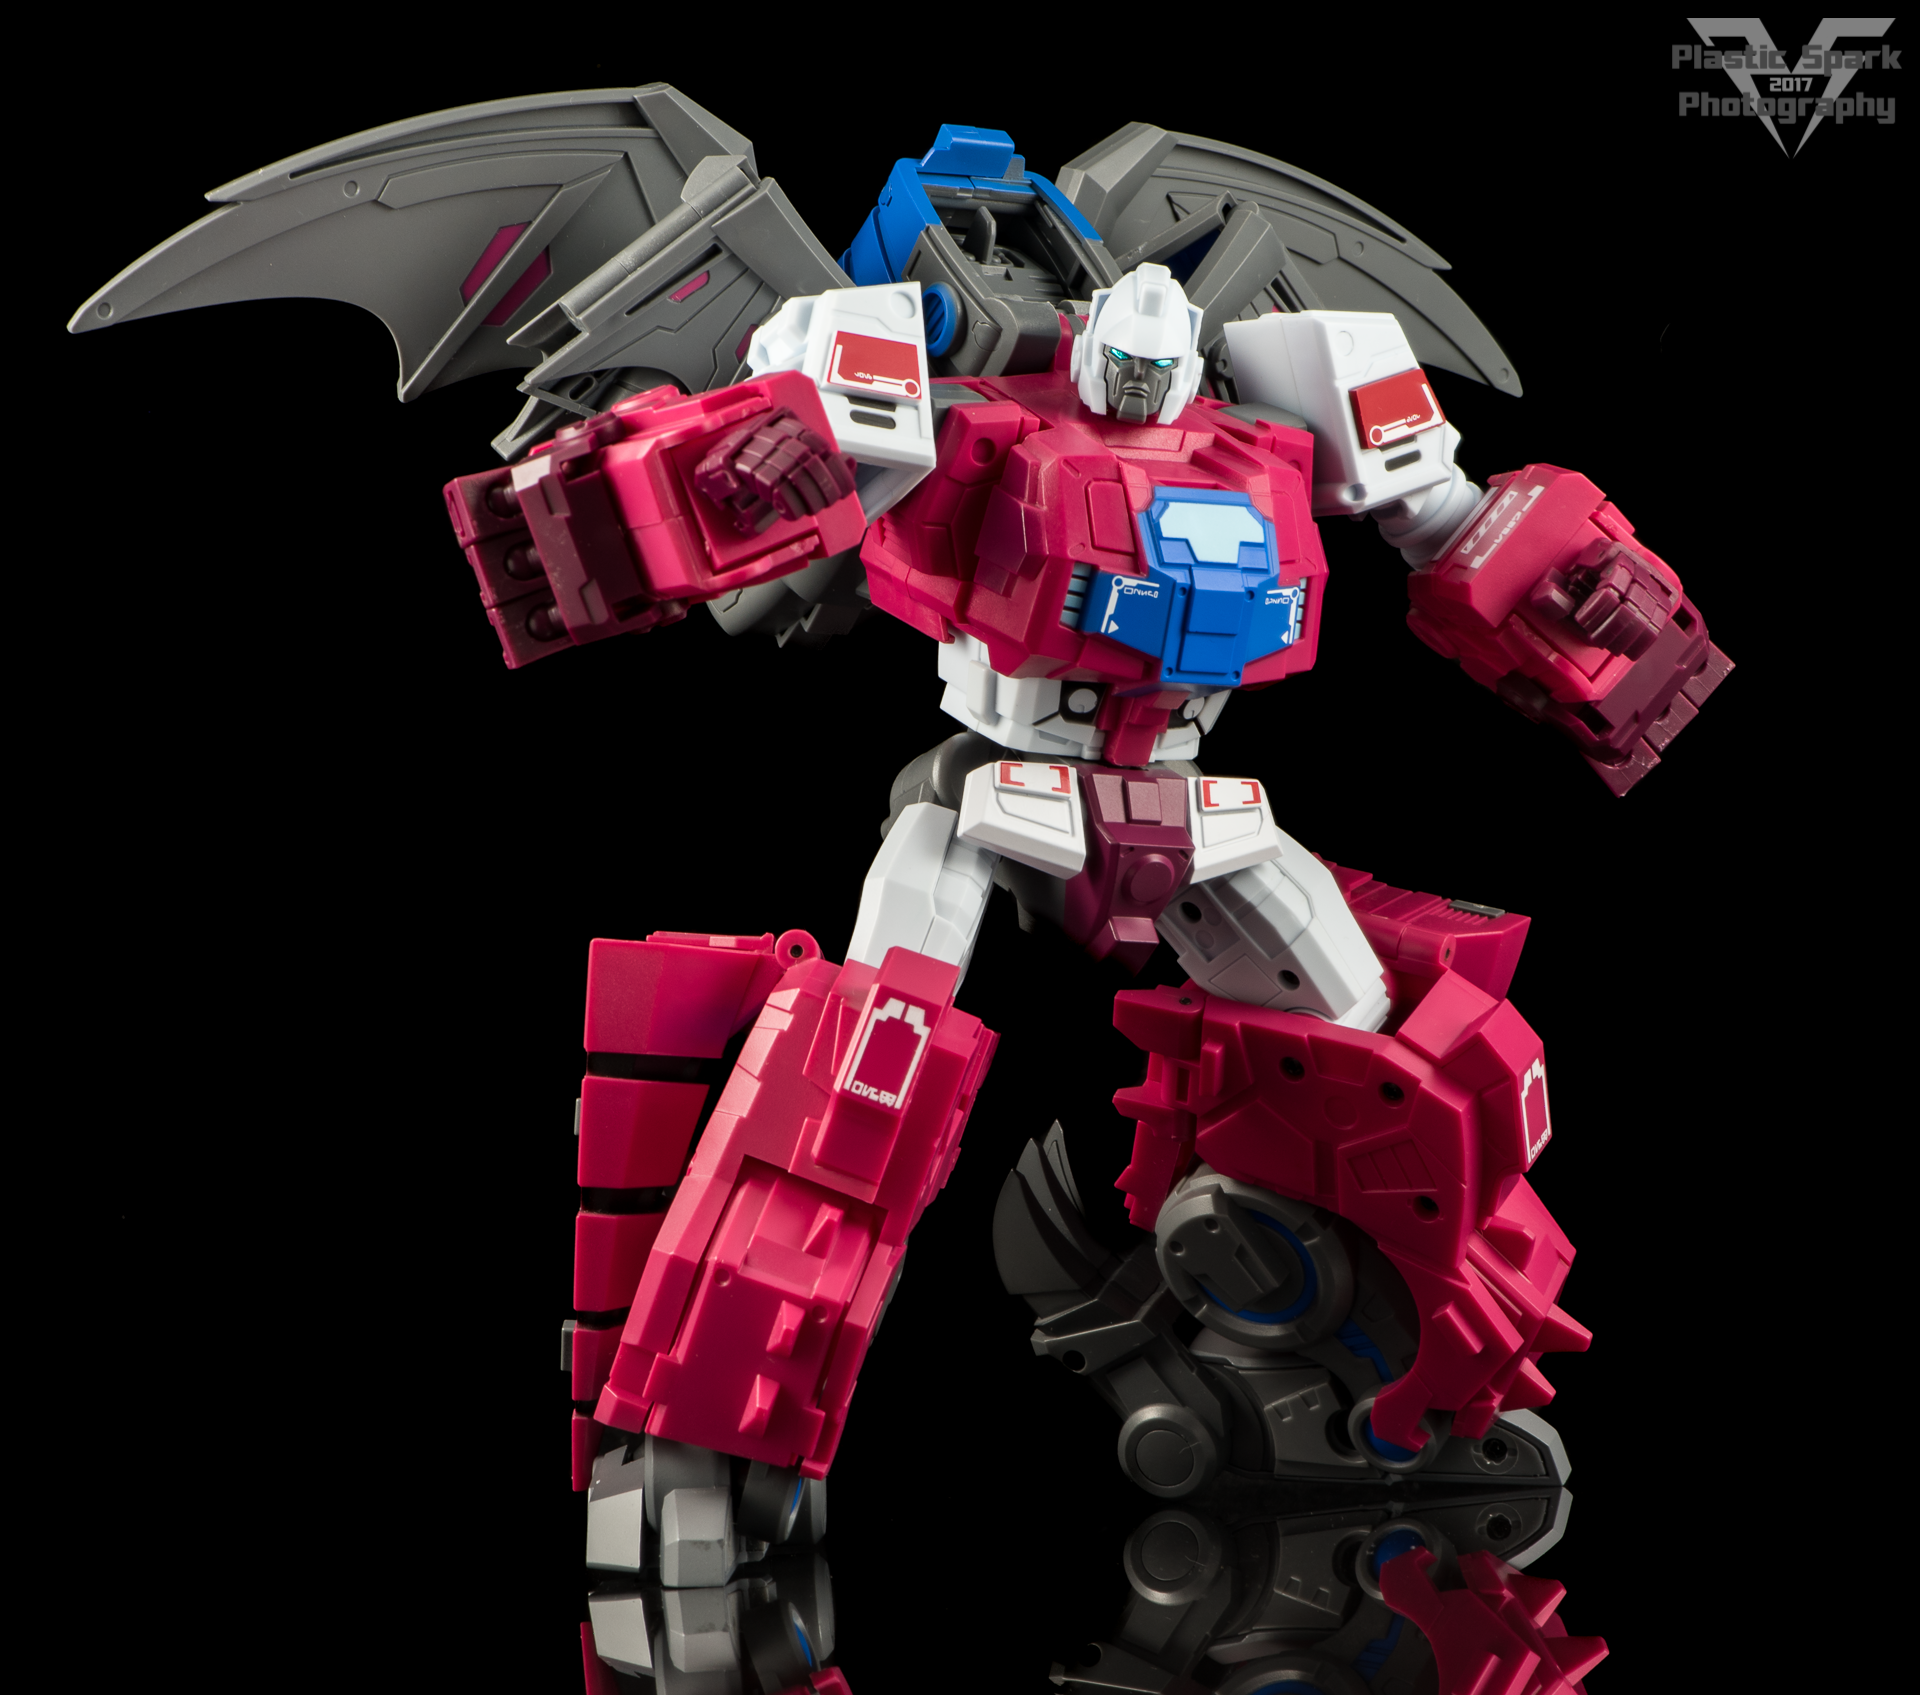 Fans-Hobby-MB-05-Flypro-(23-of-42).png